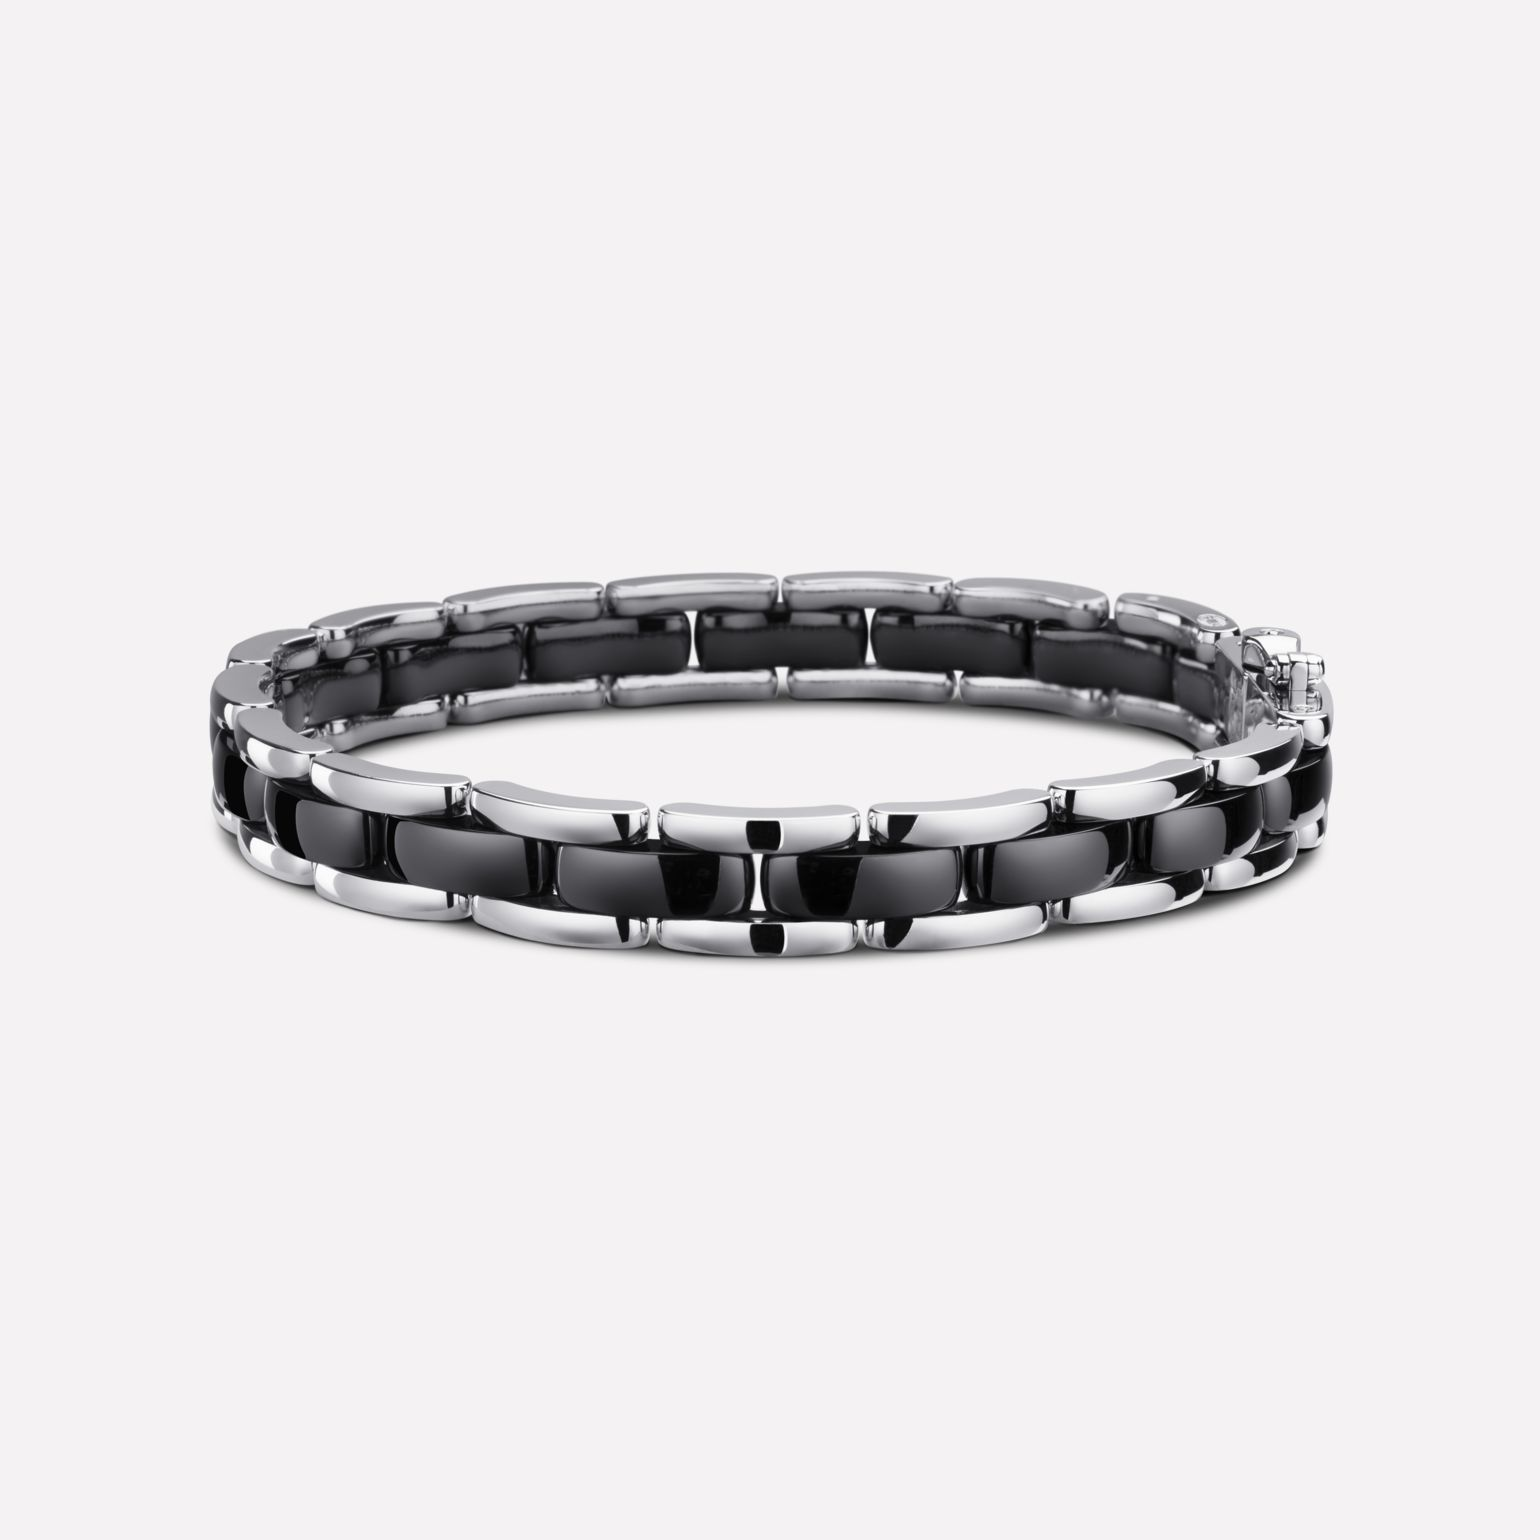 Ultra Bracelet Ultra bracelet in black ceramic and 18K white gold